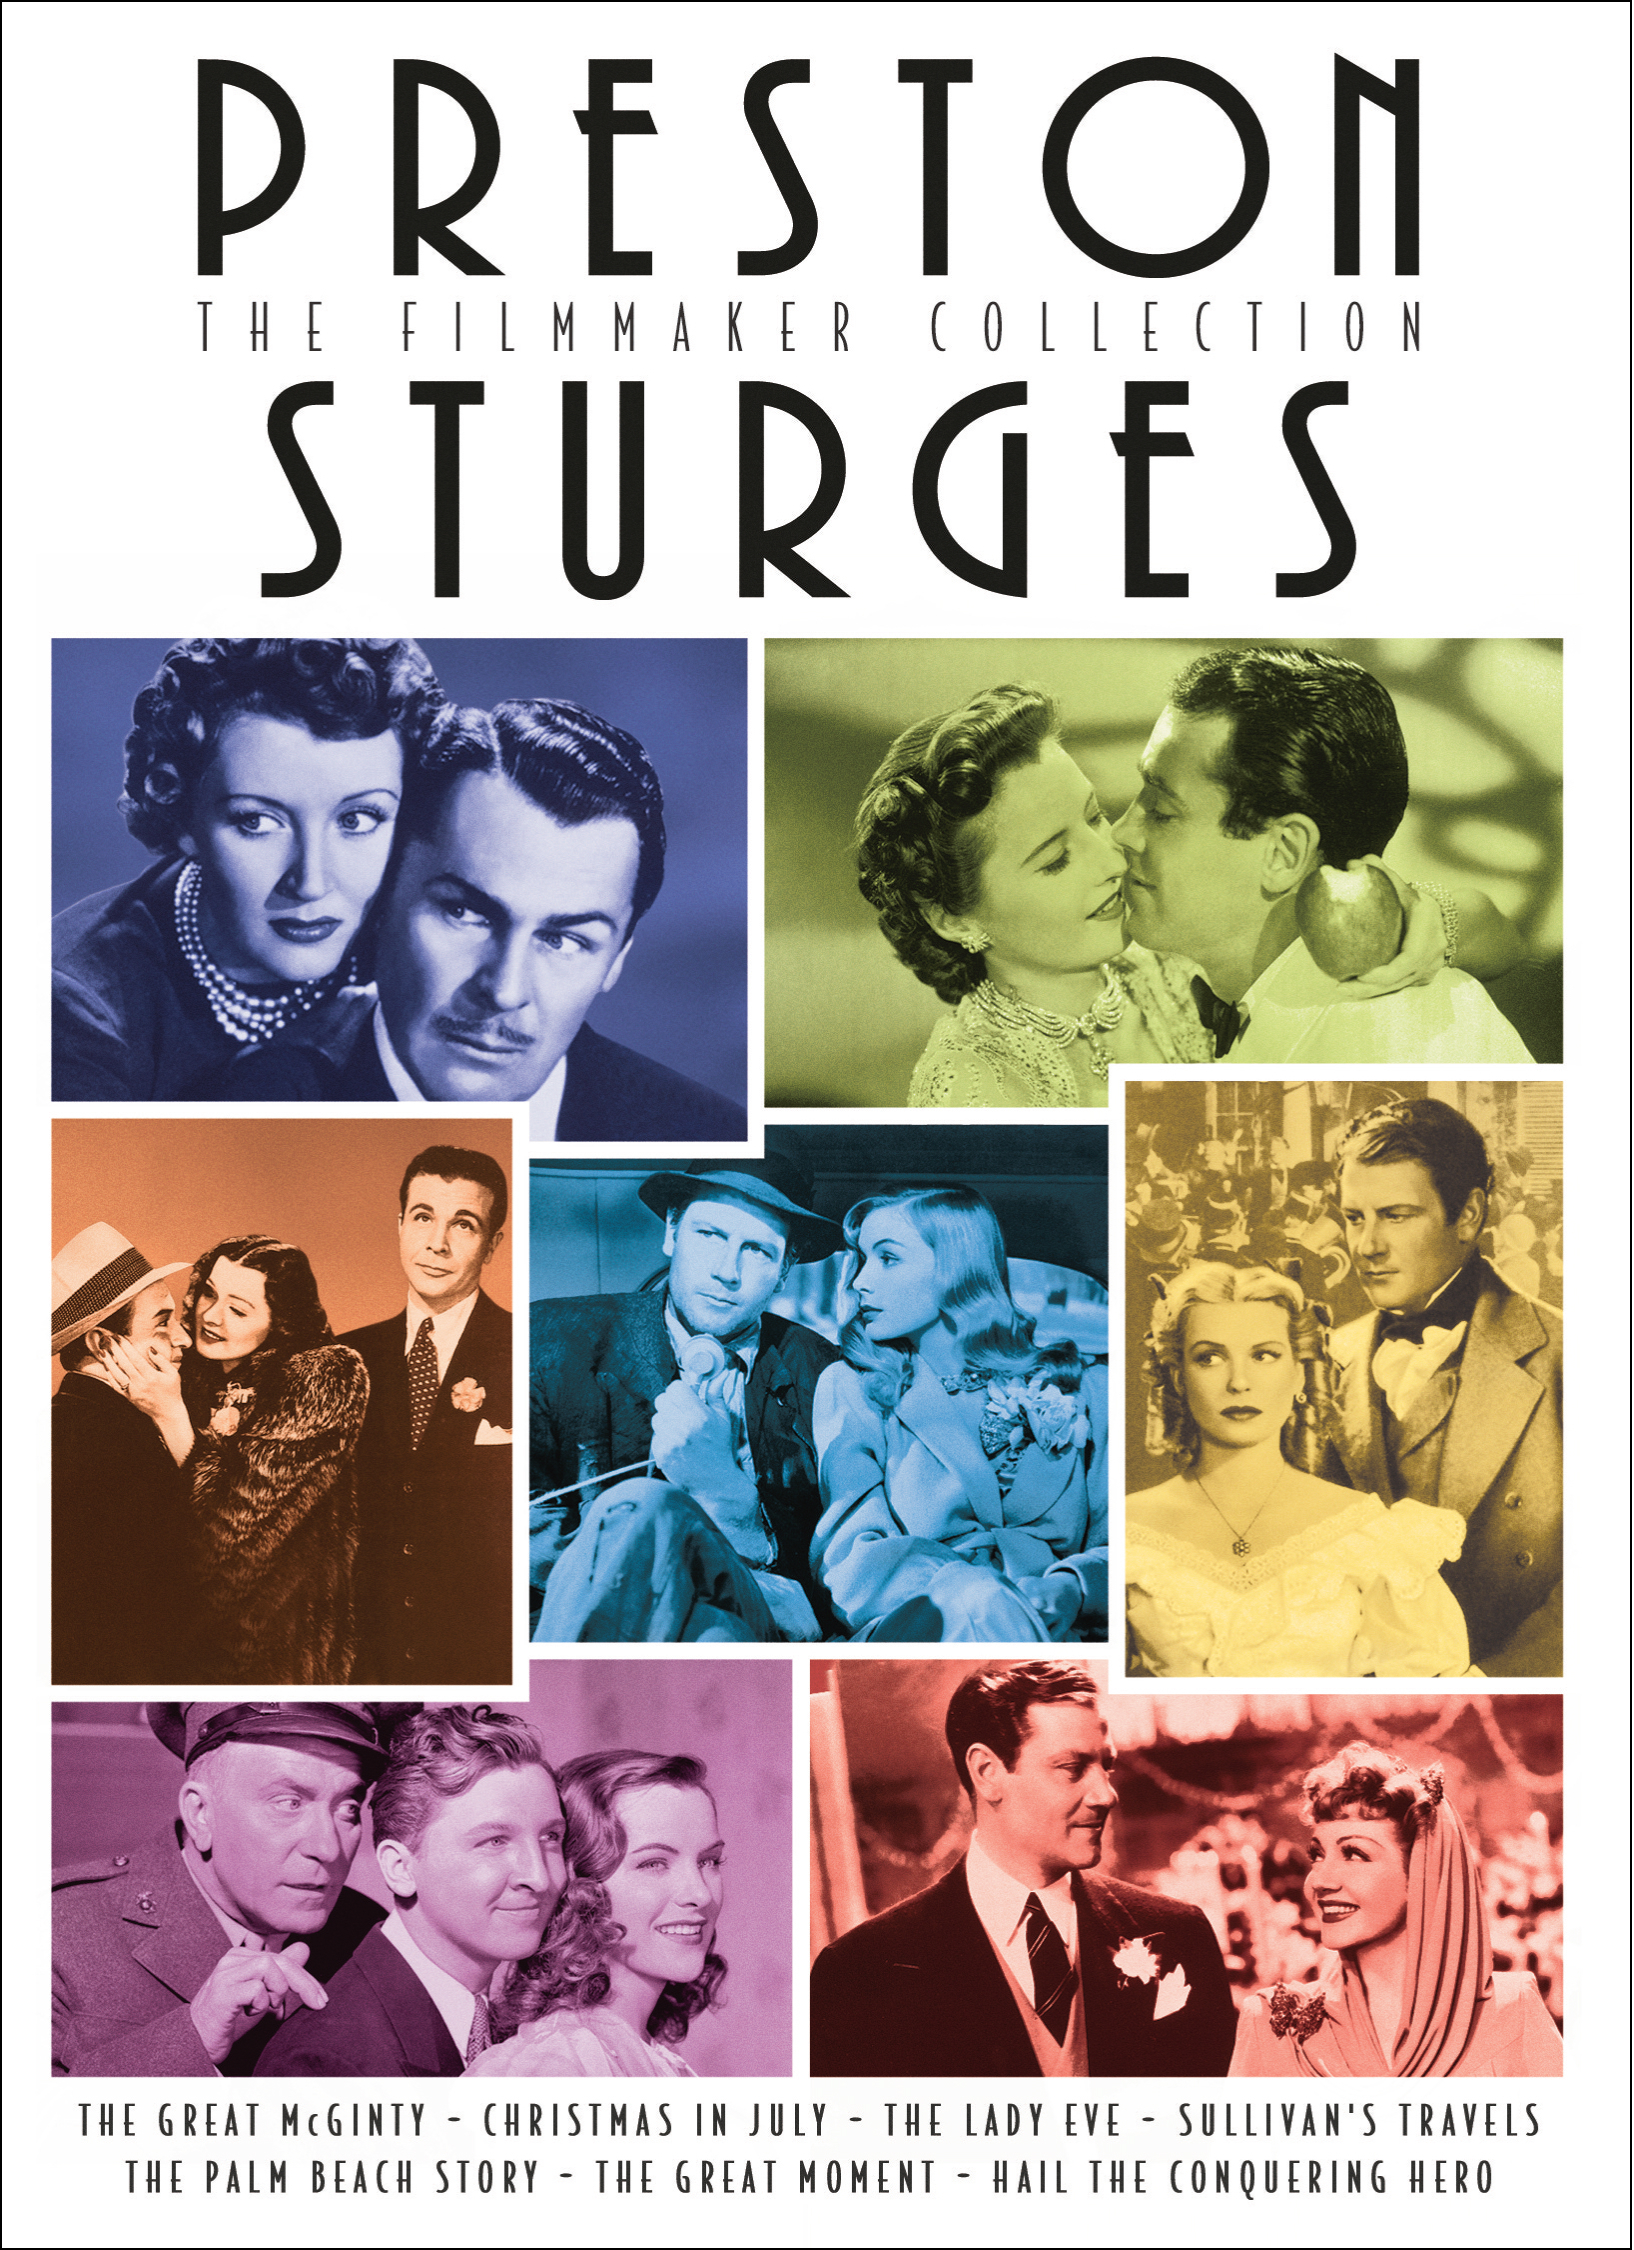 Preston Sturges: The Filmmaker Collection [DVD]